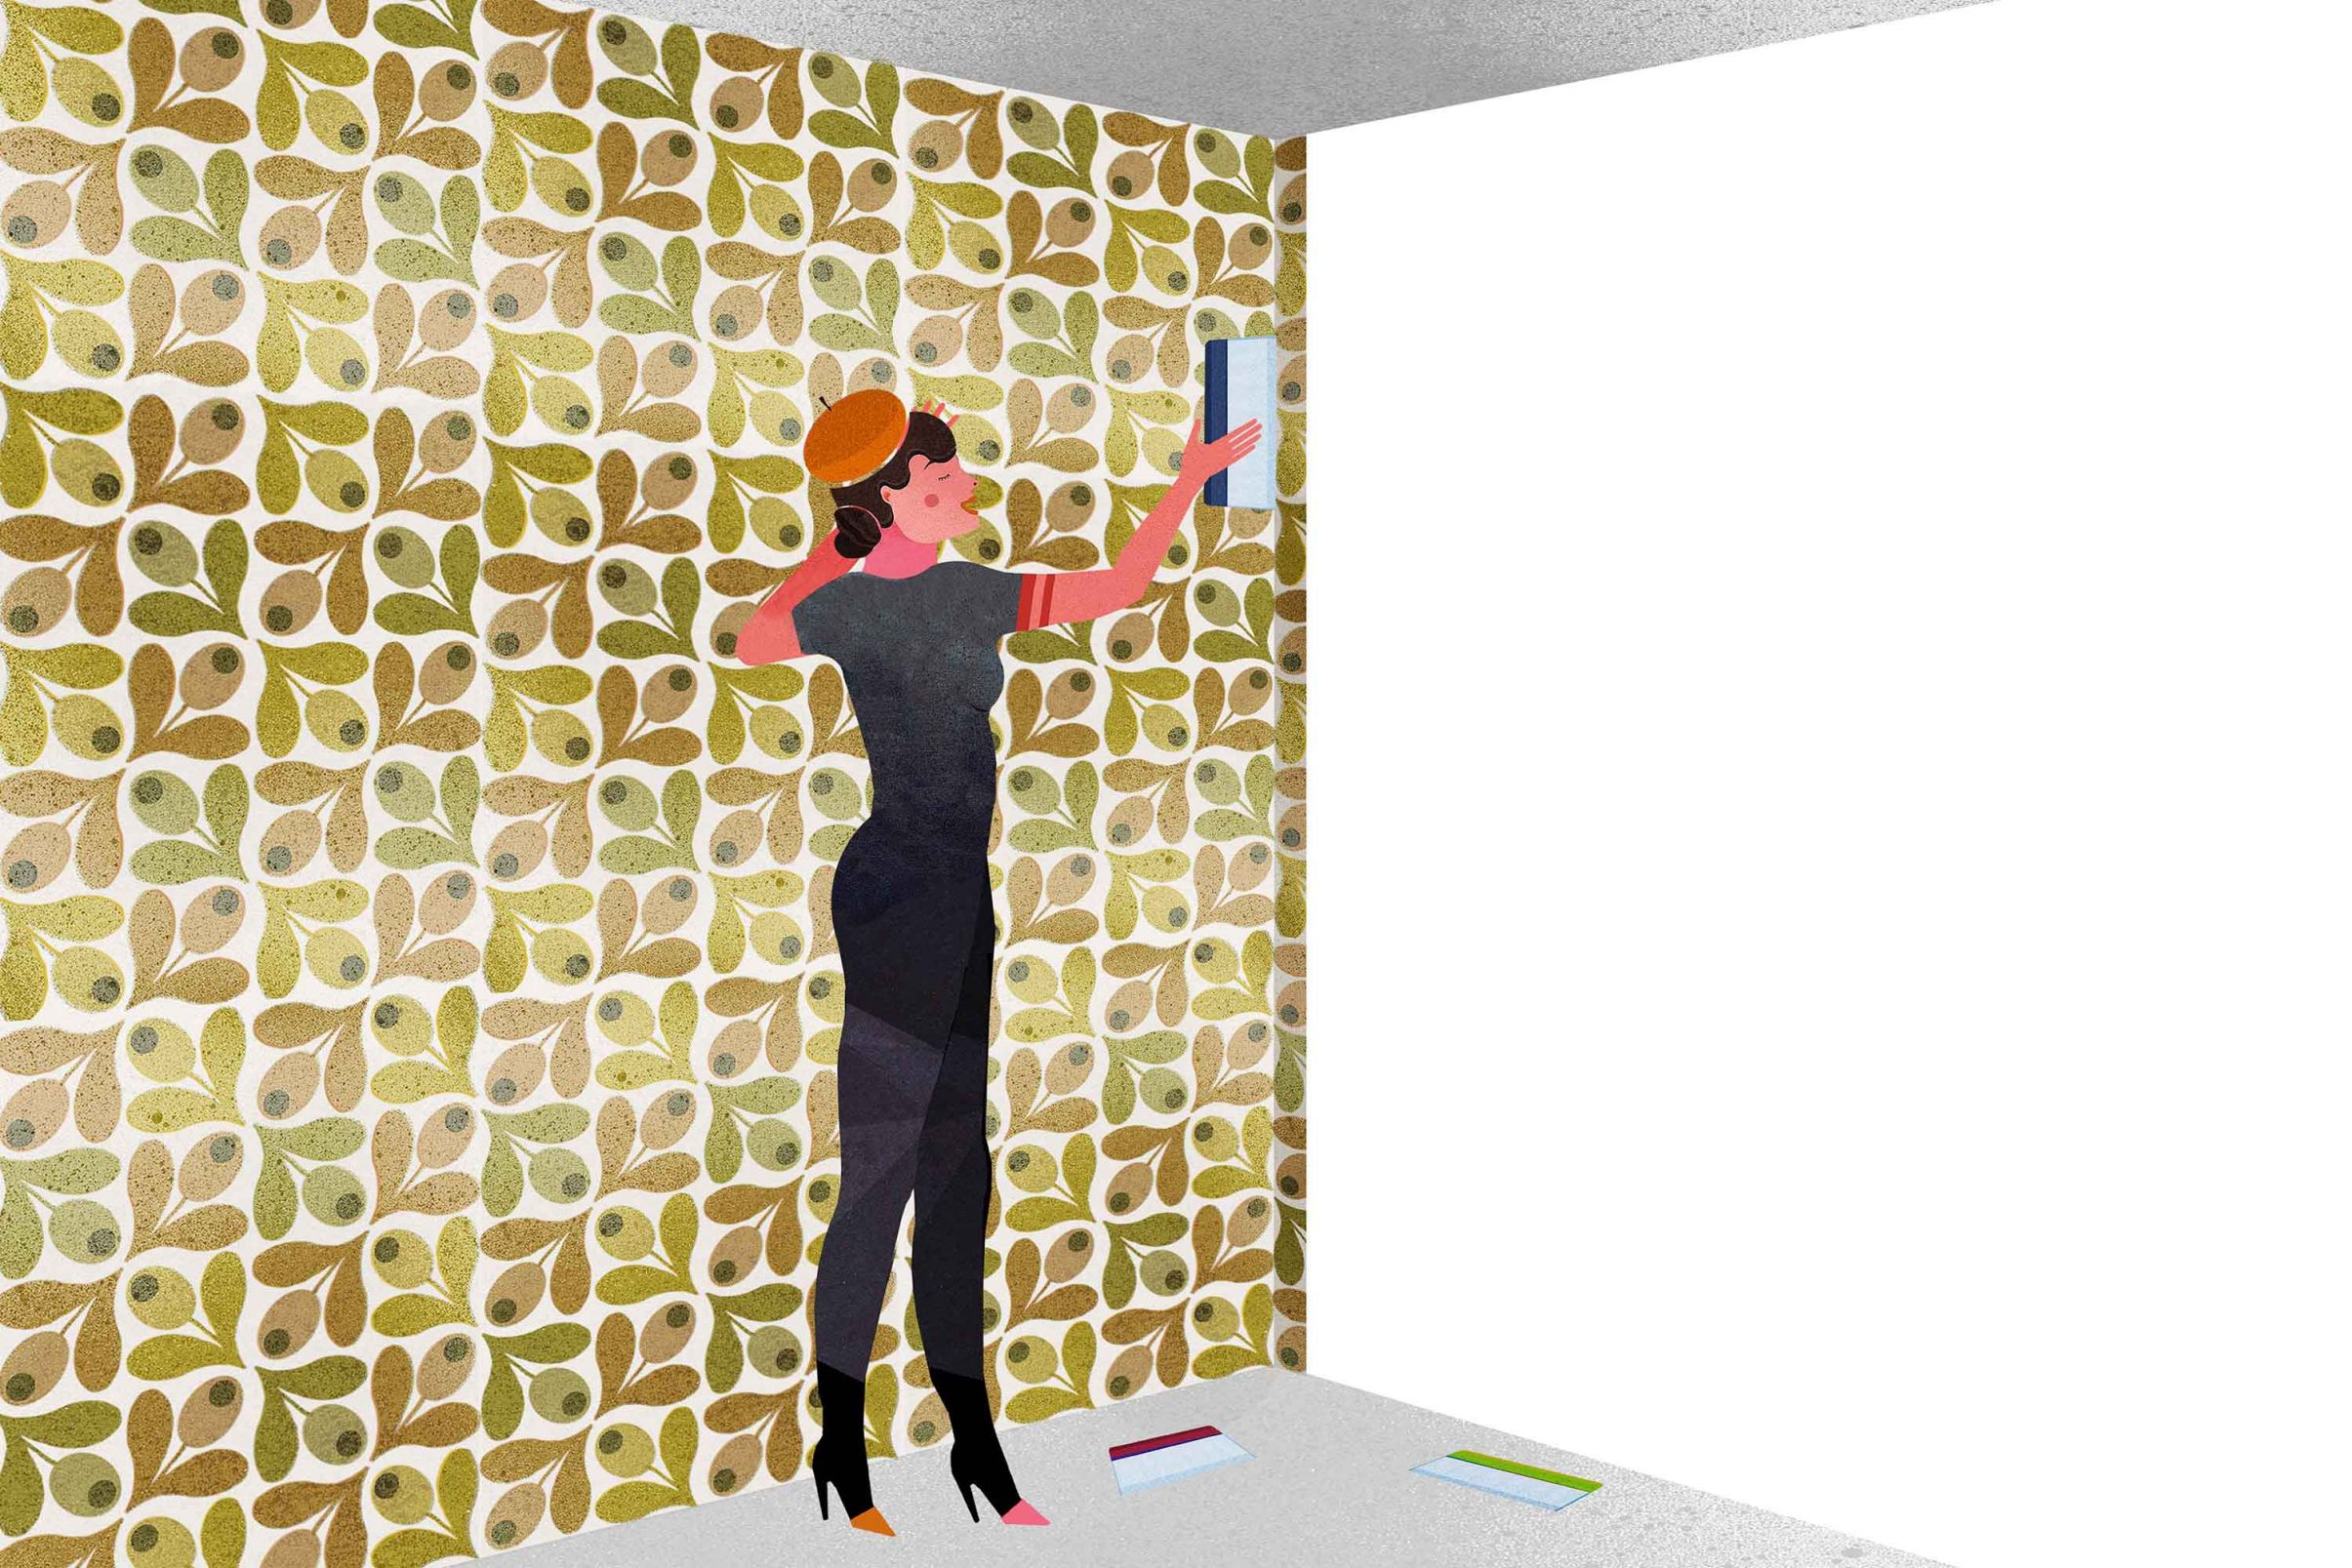 How-to-wallpaper-in-corners-Putting-a-wallpaper-length-up-around-the-inner-corner